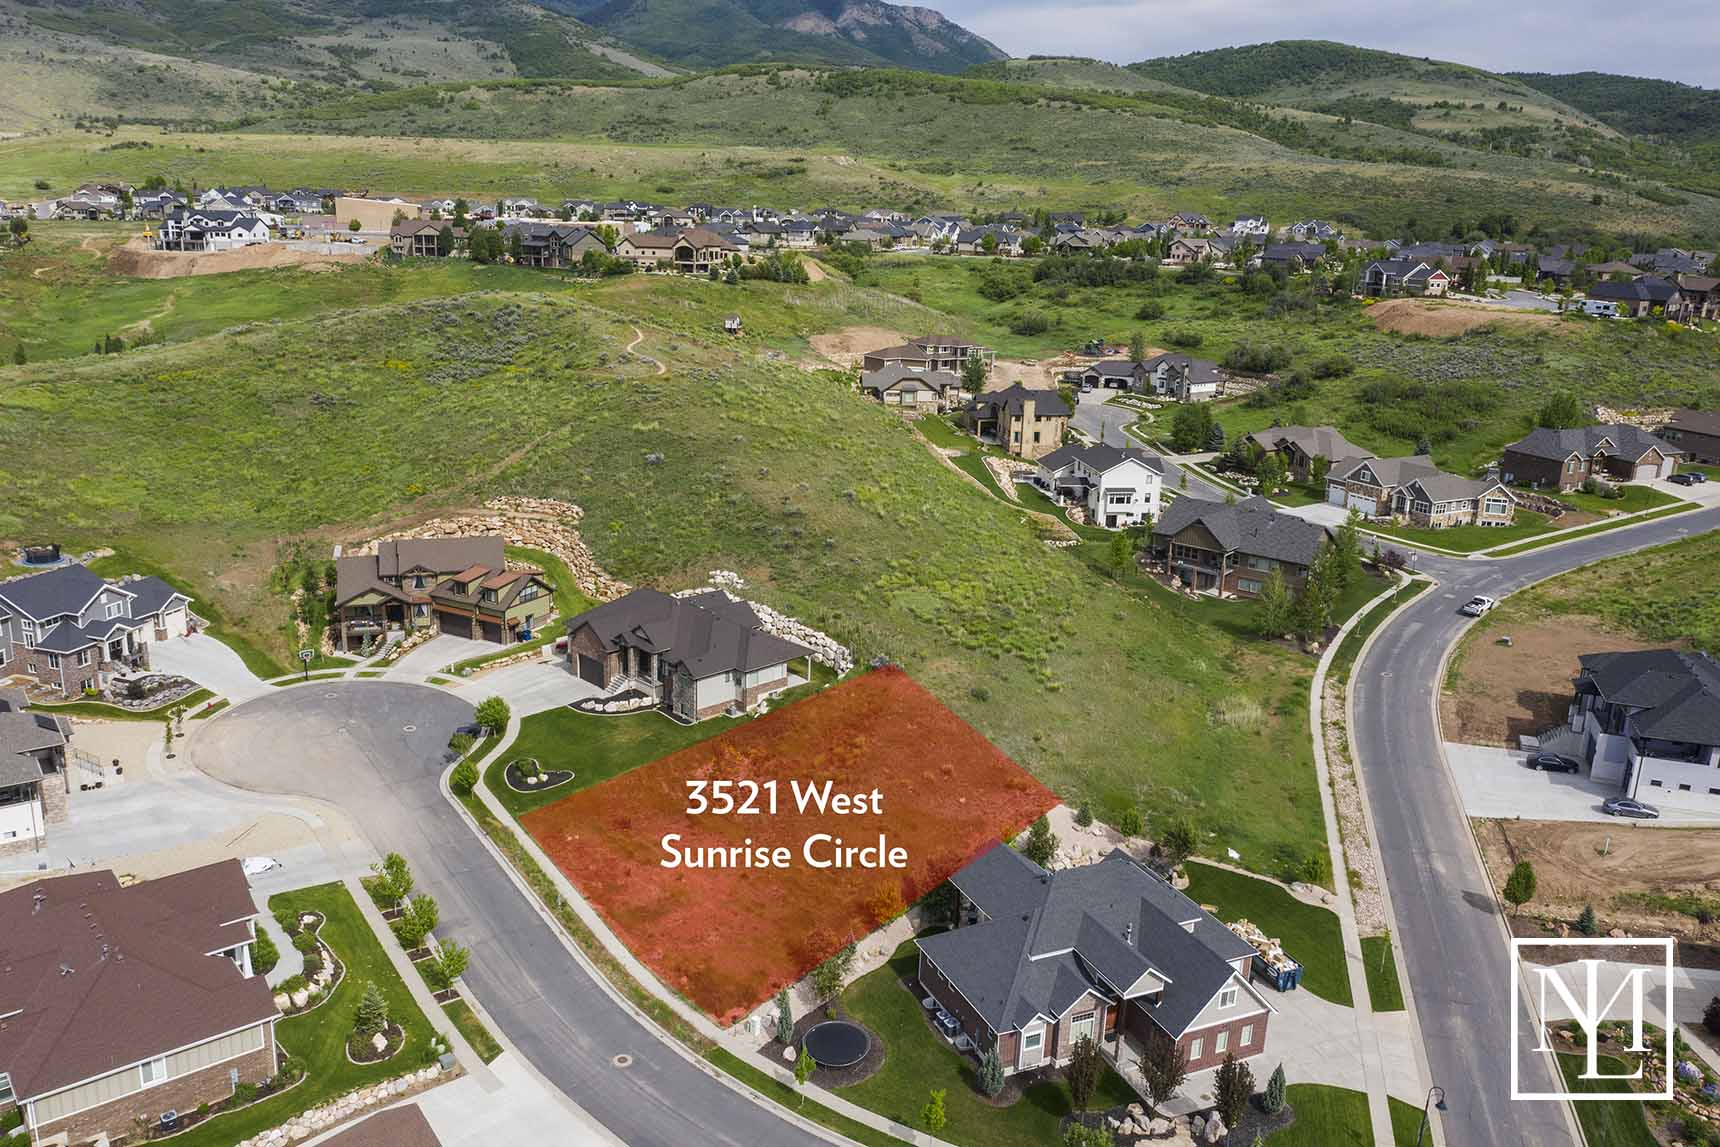 3521 W Sunrise Circle, Mountain Green, UT 84050 01